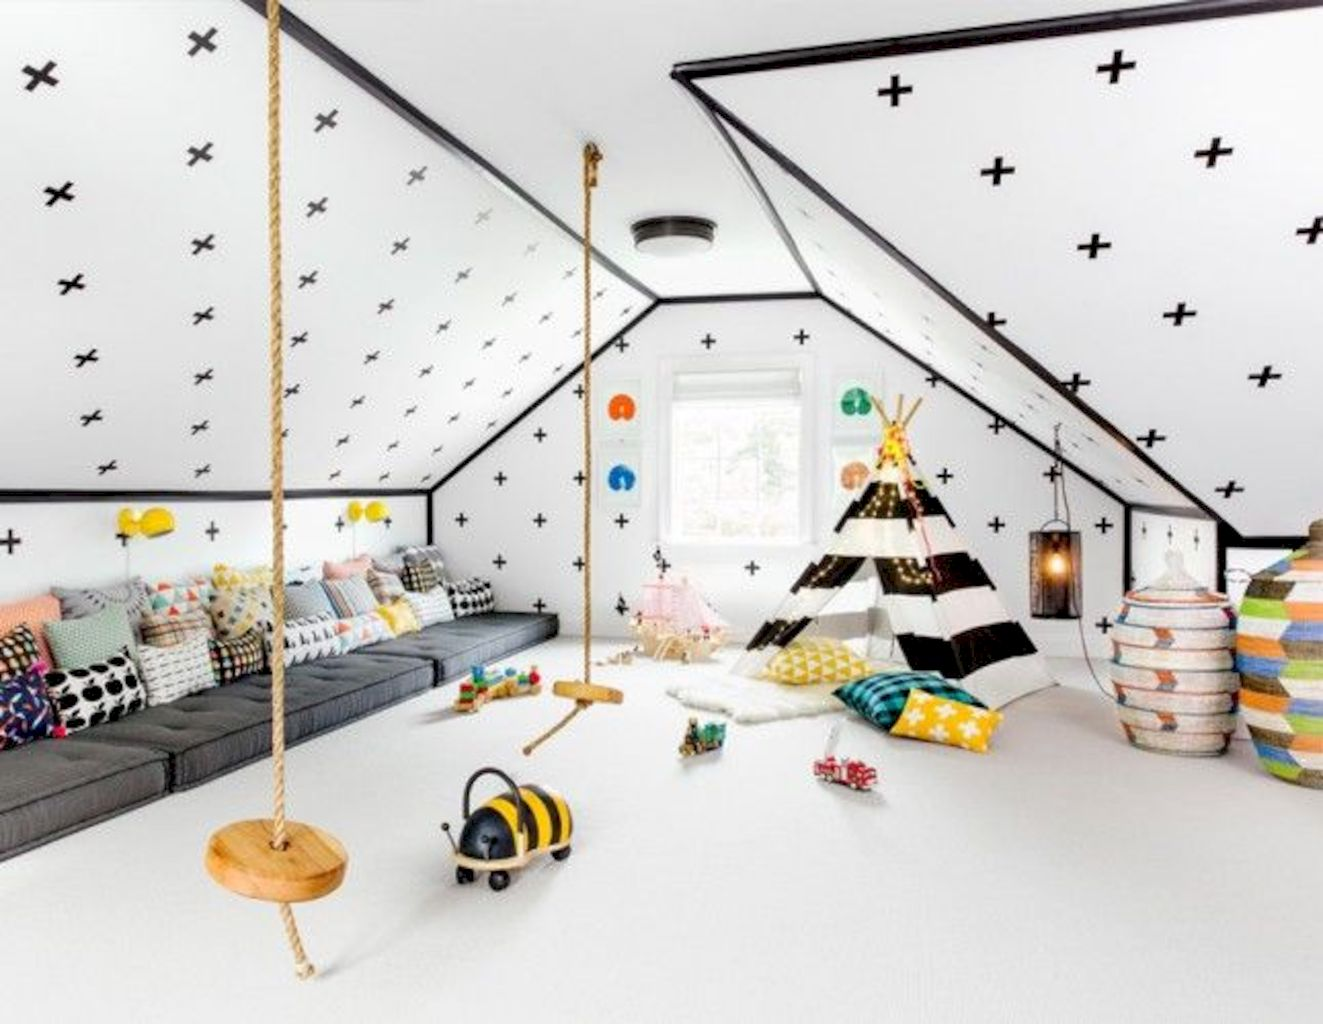 Low budget playrooms for small space showing off inspiring decoration and accessories to provide kiddos special spaces for more kids time Image 22